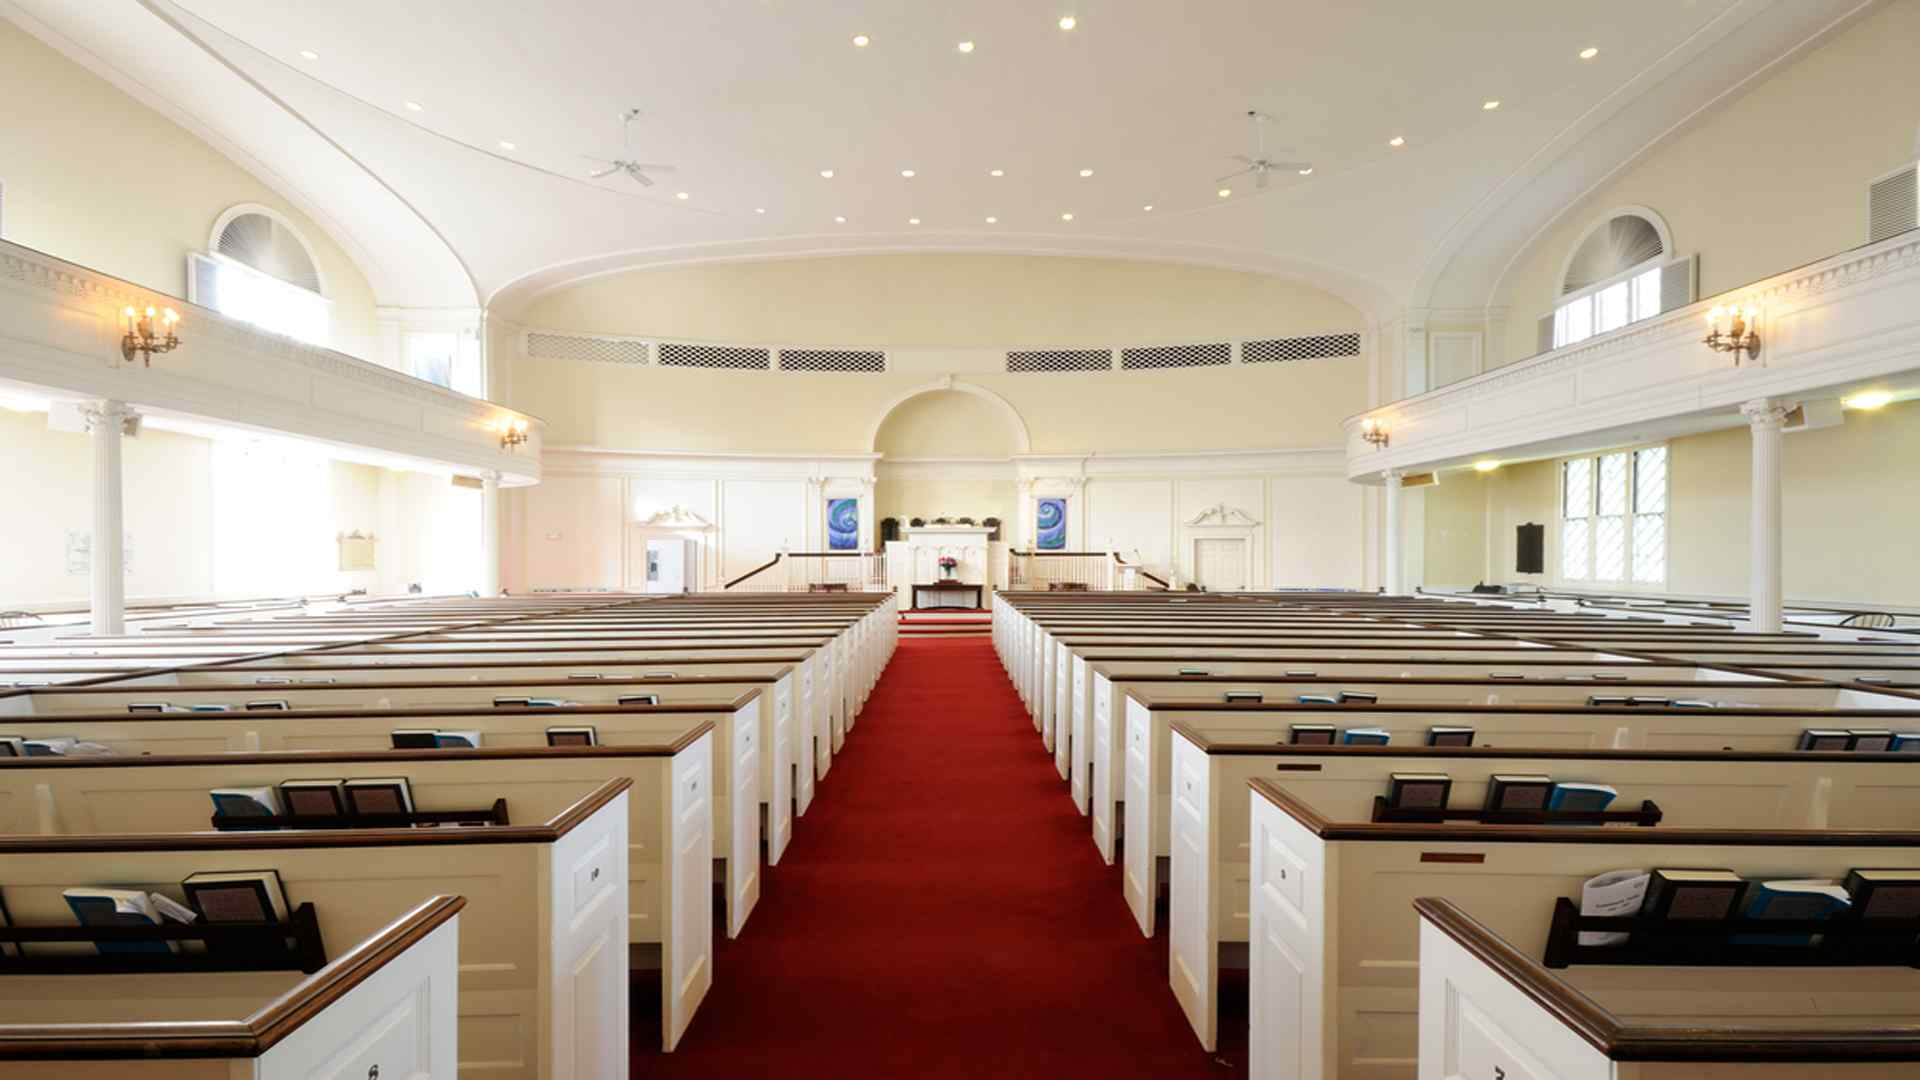 Inside Of A Church-Church Cleaning-Commercial Cleaning Greensboro High Point NC-True Clean Experience-2307 West Cone Blvd Suite G, Greensboro NC